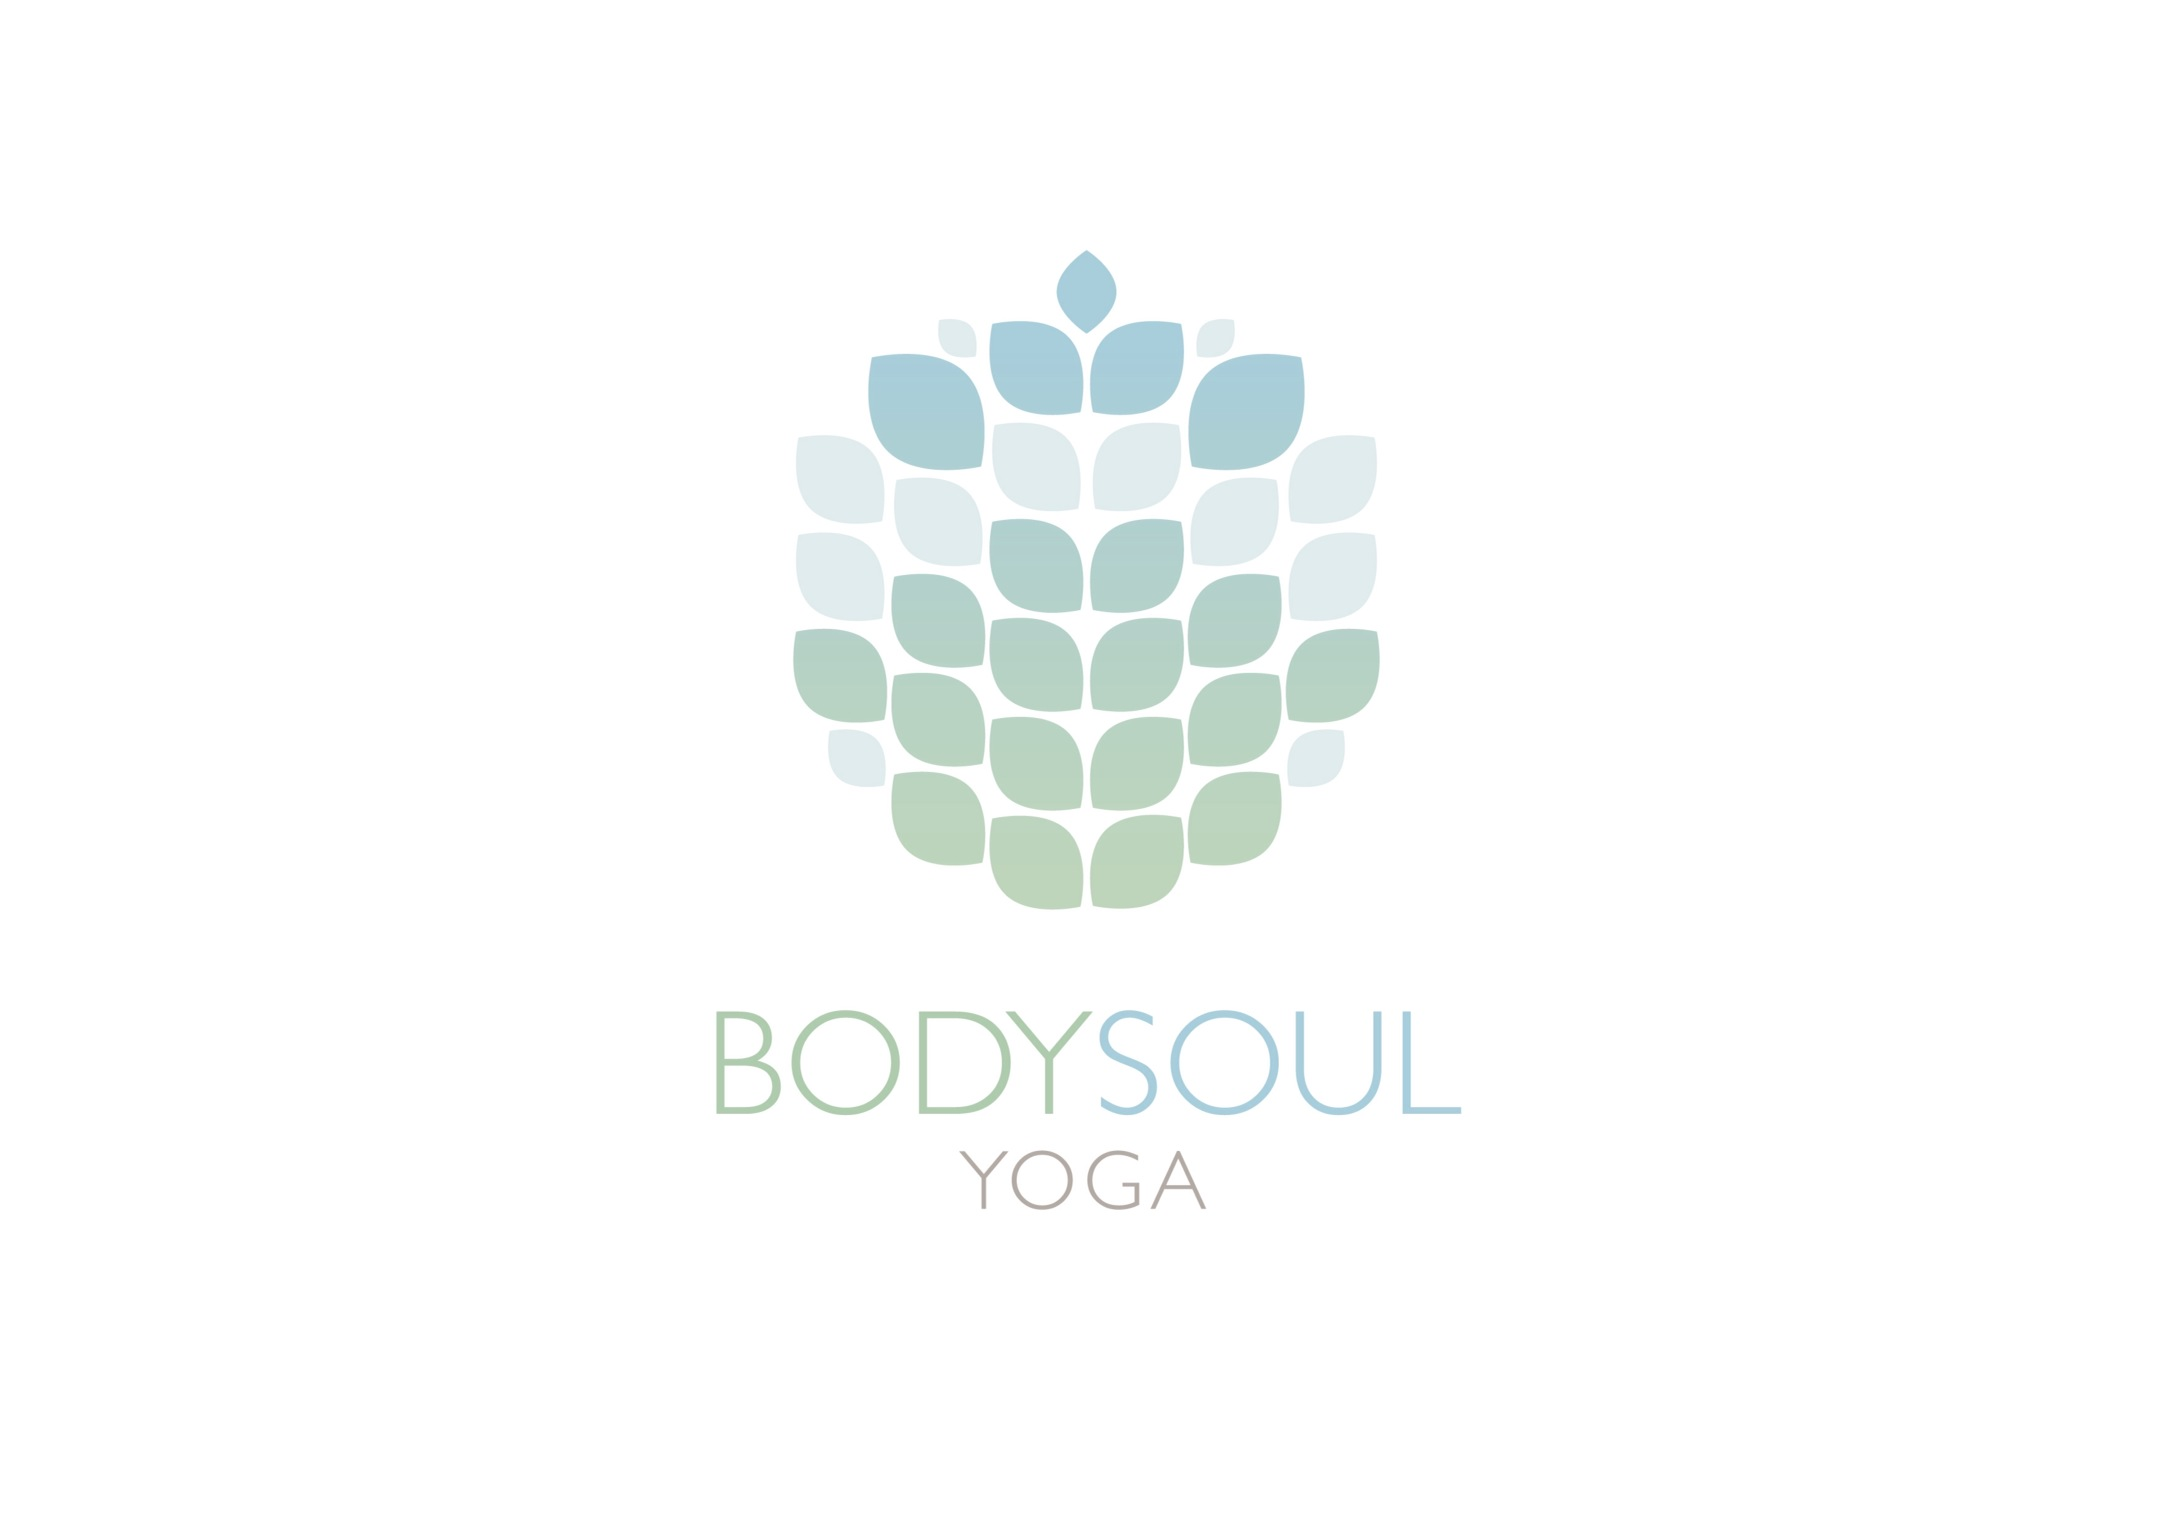 Yoga Asana Practice Exploring The Fire Element 45 Mins with Faye Koe Body Soul Yoga